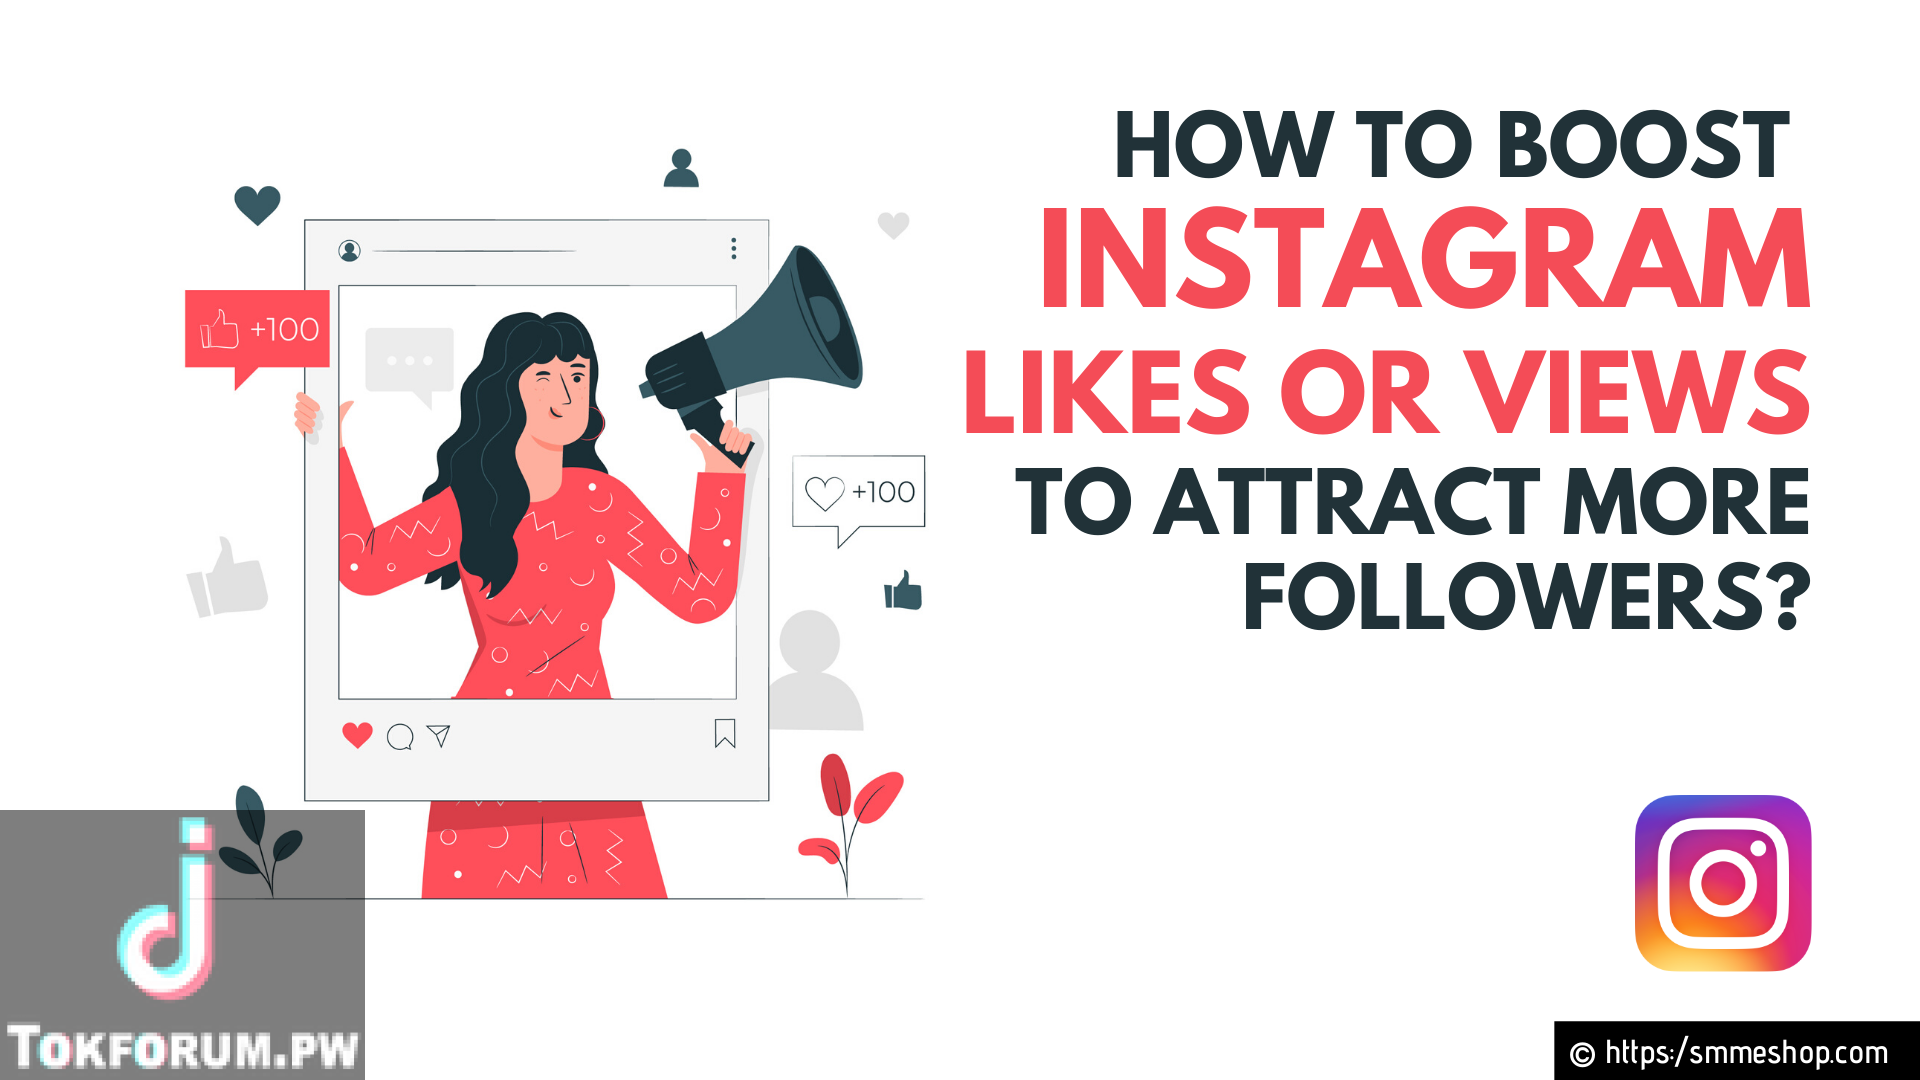 how-to-boost-instagram-likes-or-views-to-attract-more-followers_h1587744366-png.919